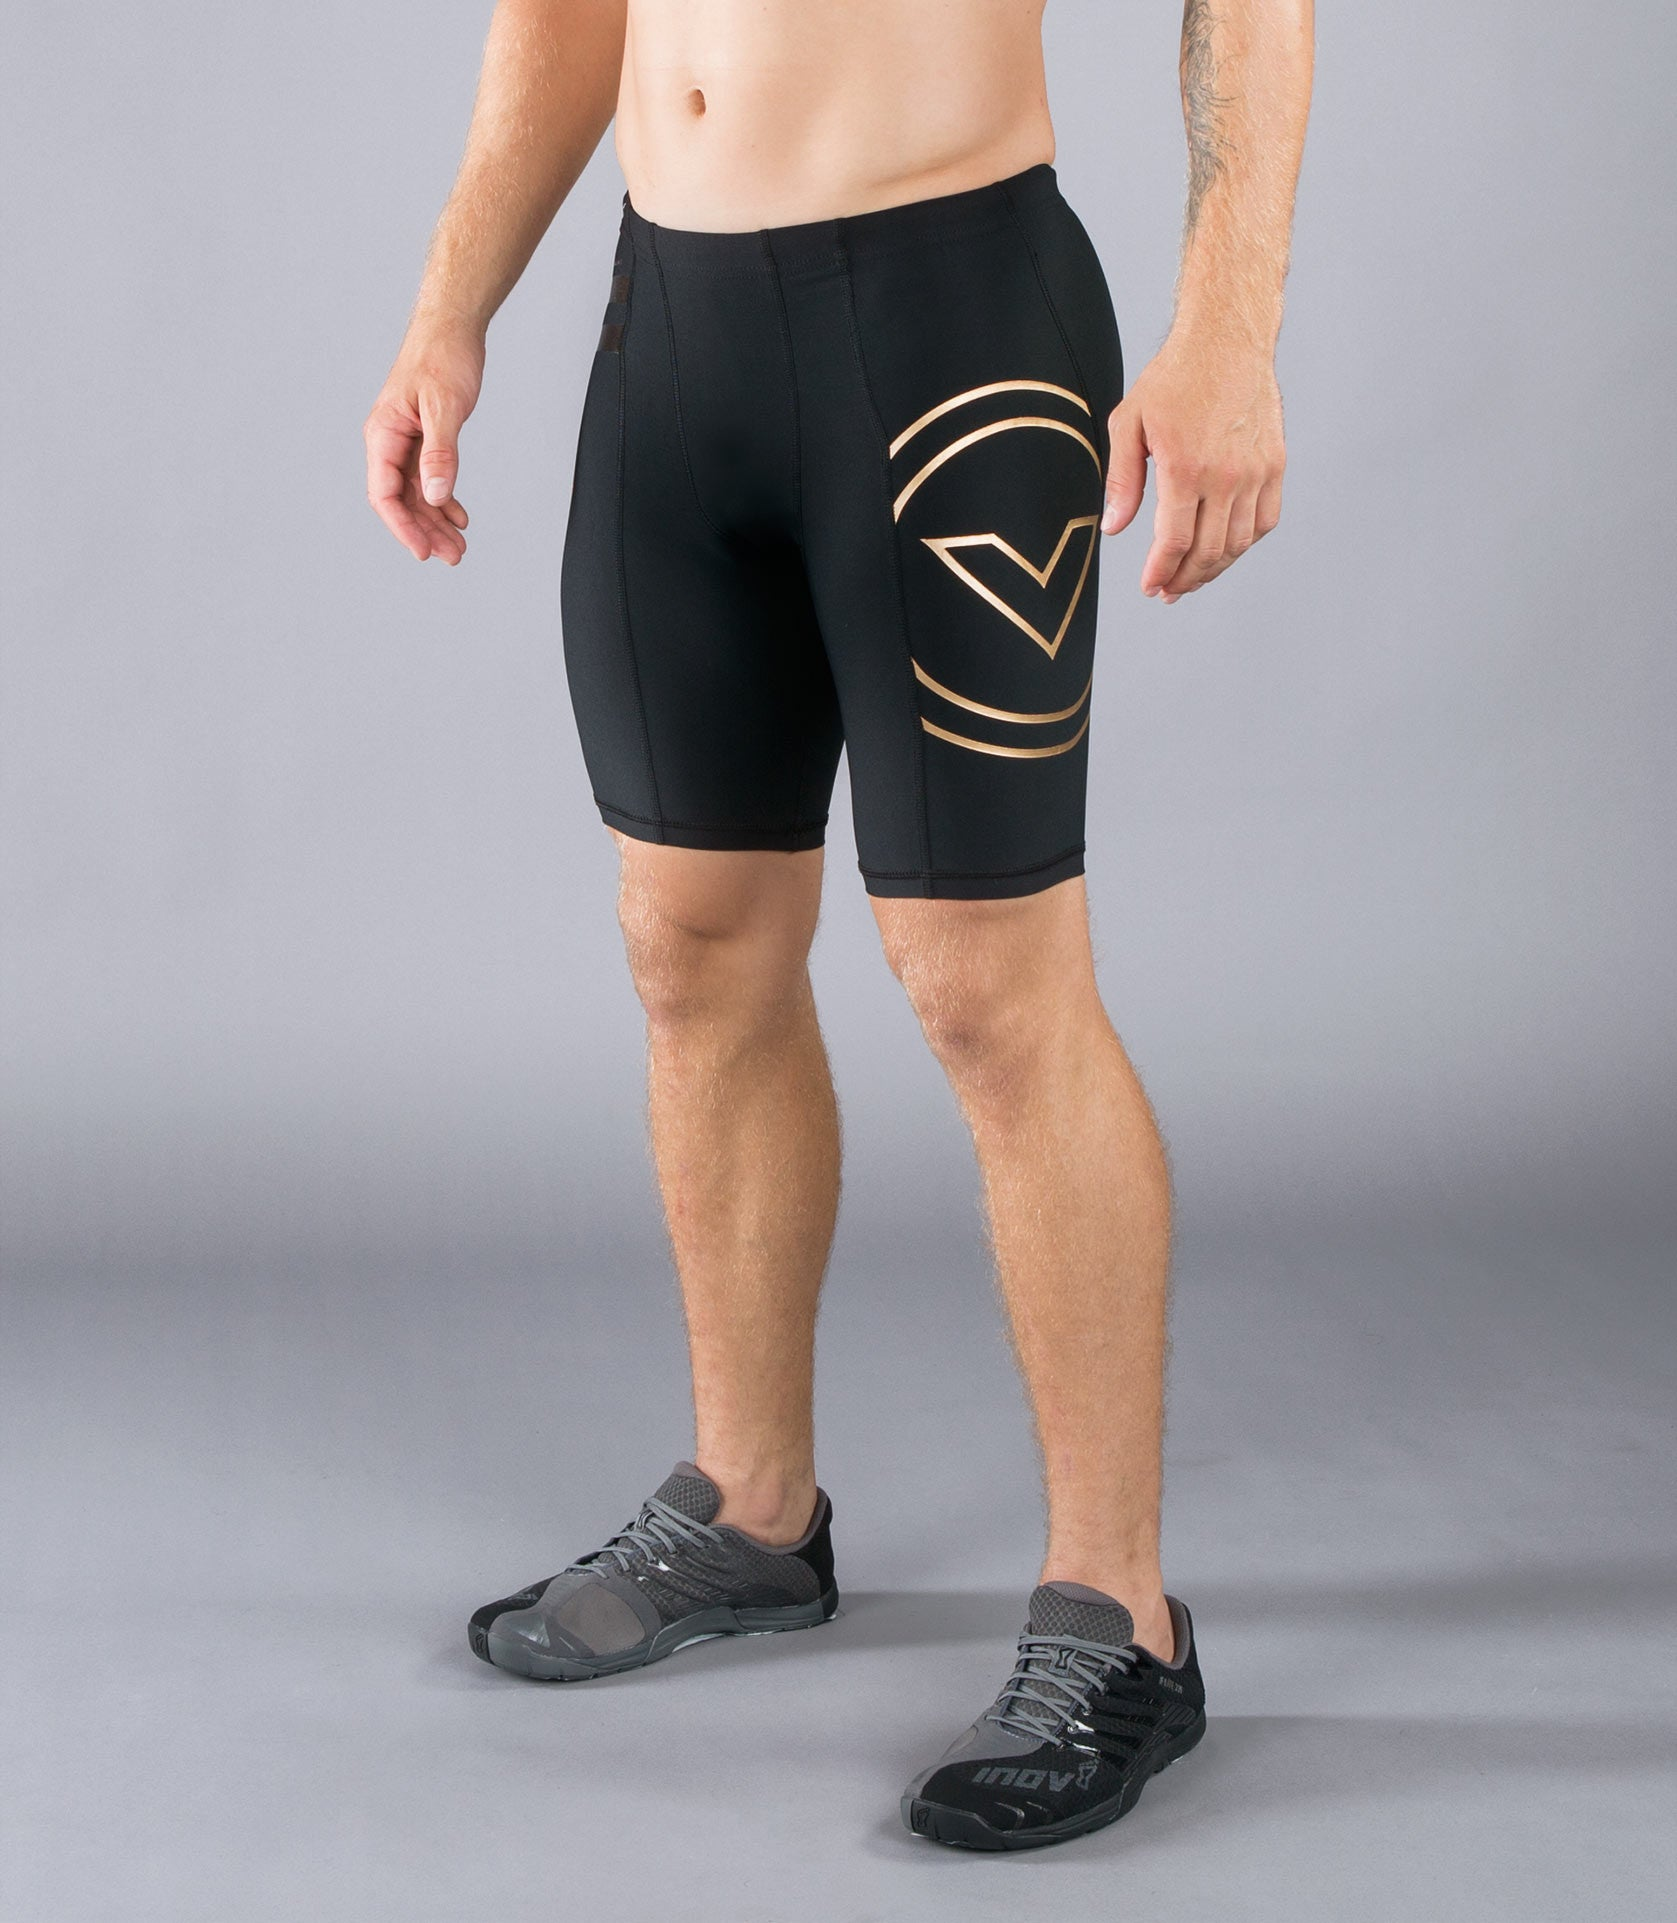 Au11 | Recovery Compression Shorts | Black/Gold